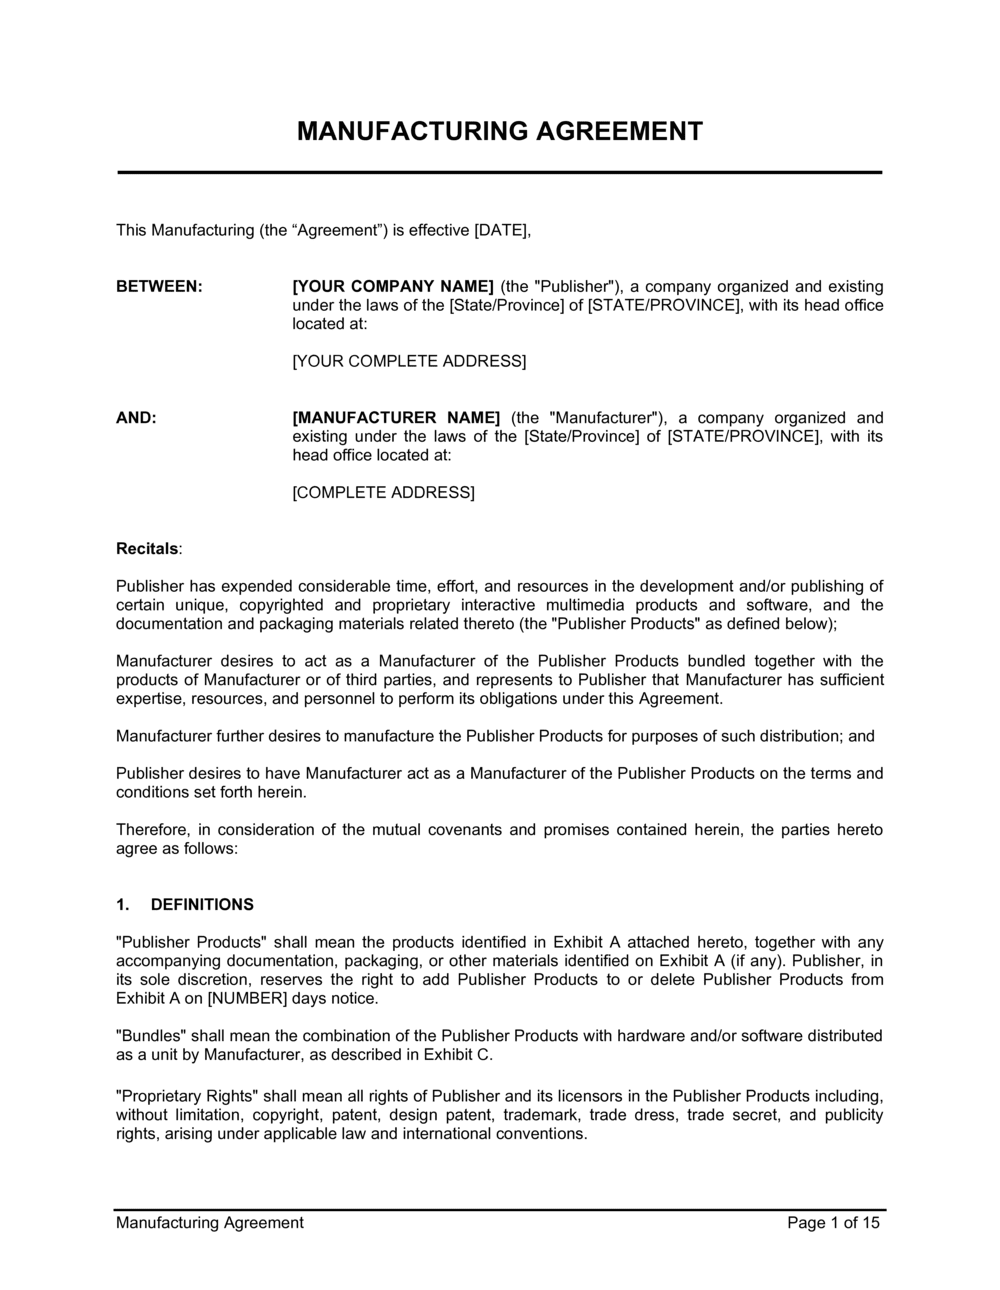 Business-in-a-Box's Manufacturing Agreement Template